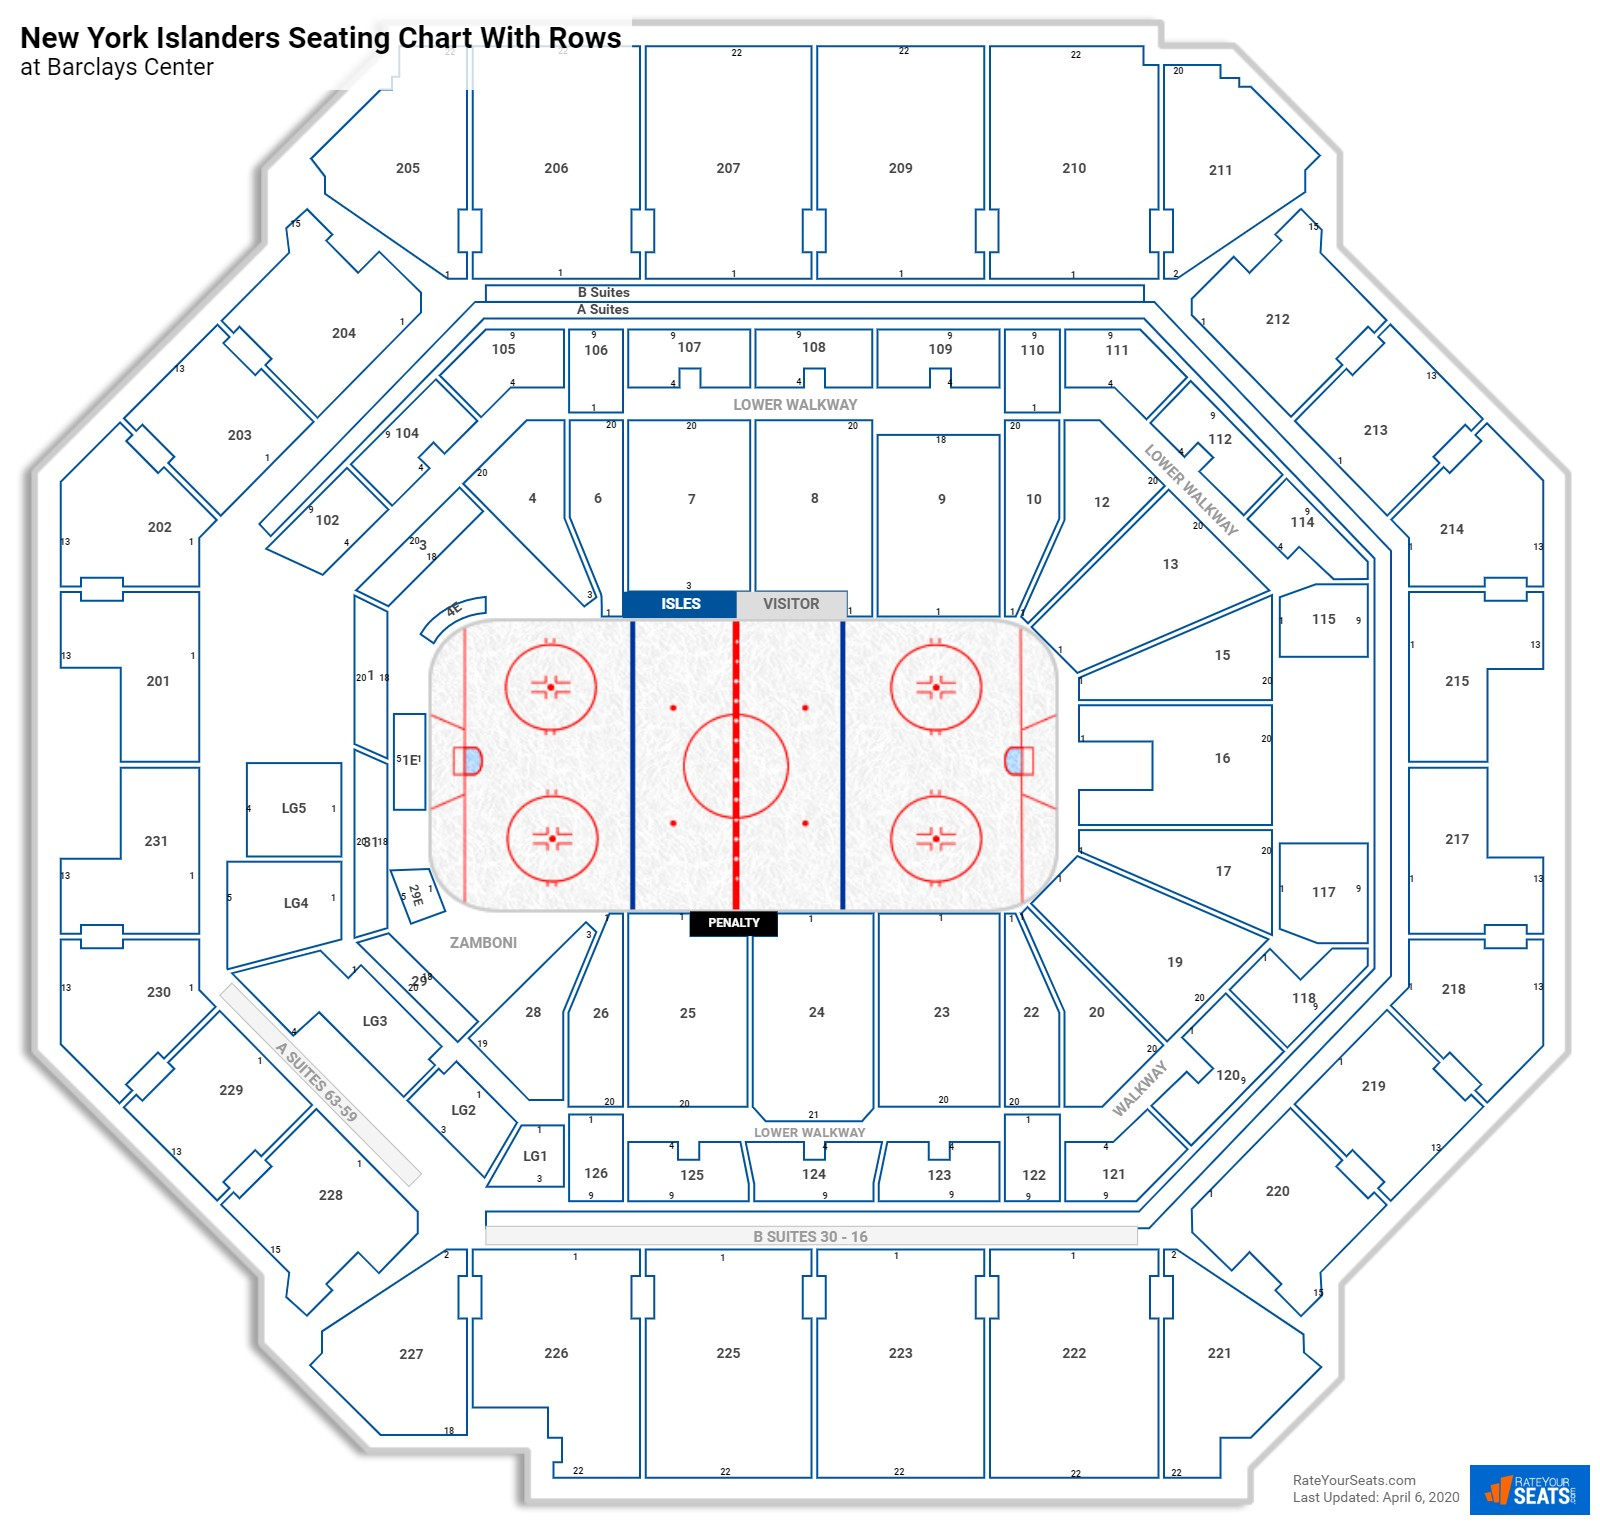 Barclays Center seating chart with rows hockey